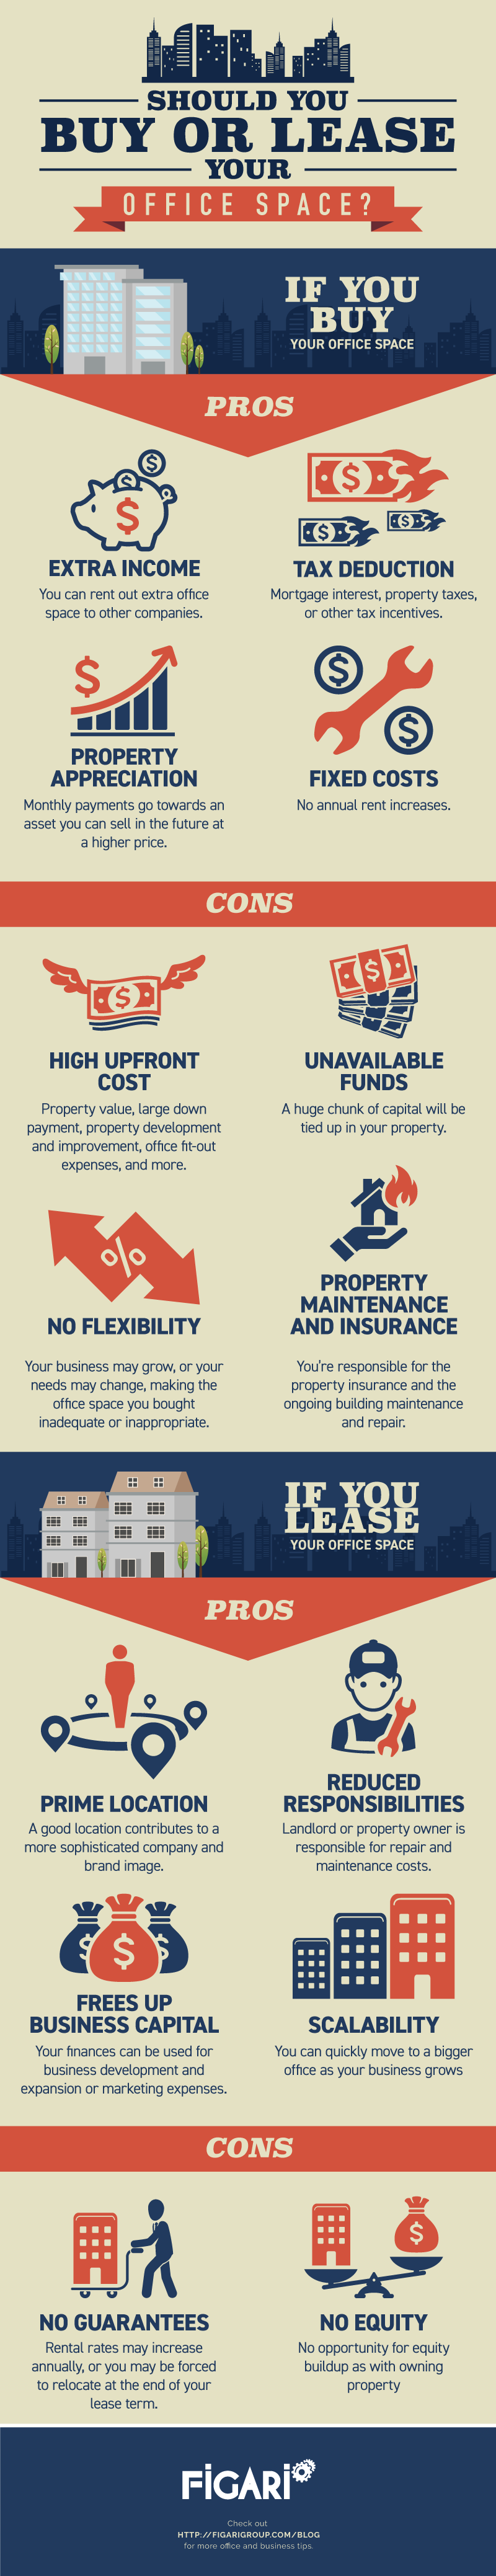 Should You Buy or Lease Your Office Space? A Visual Guide by Figari